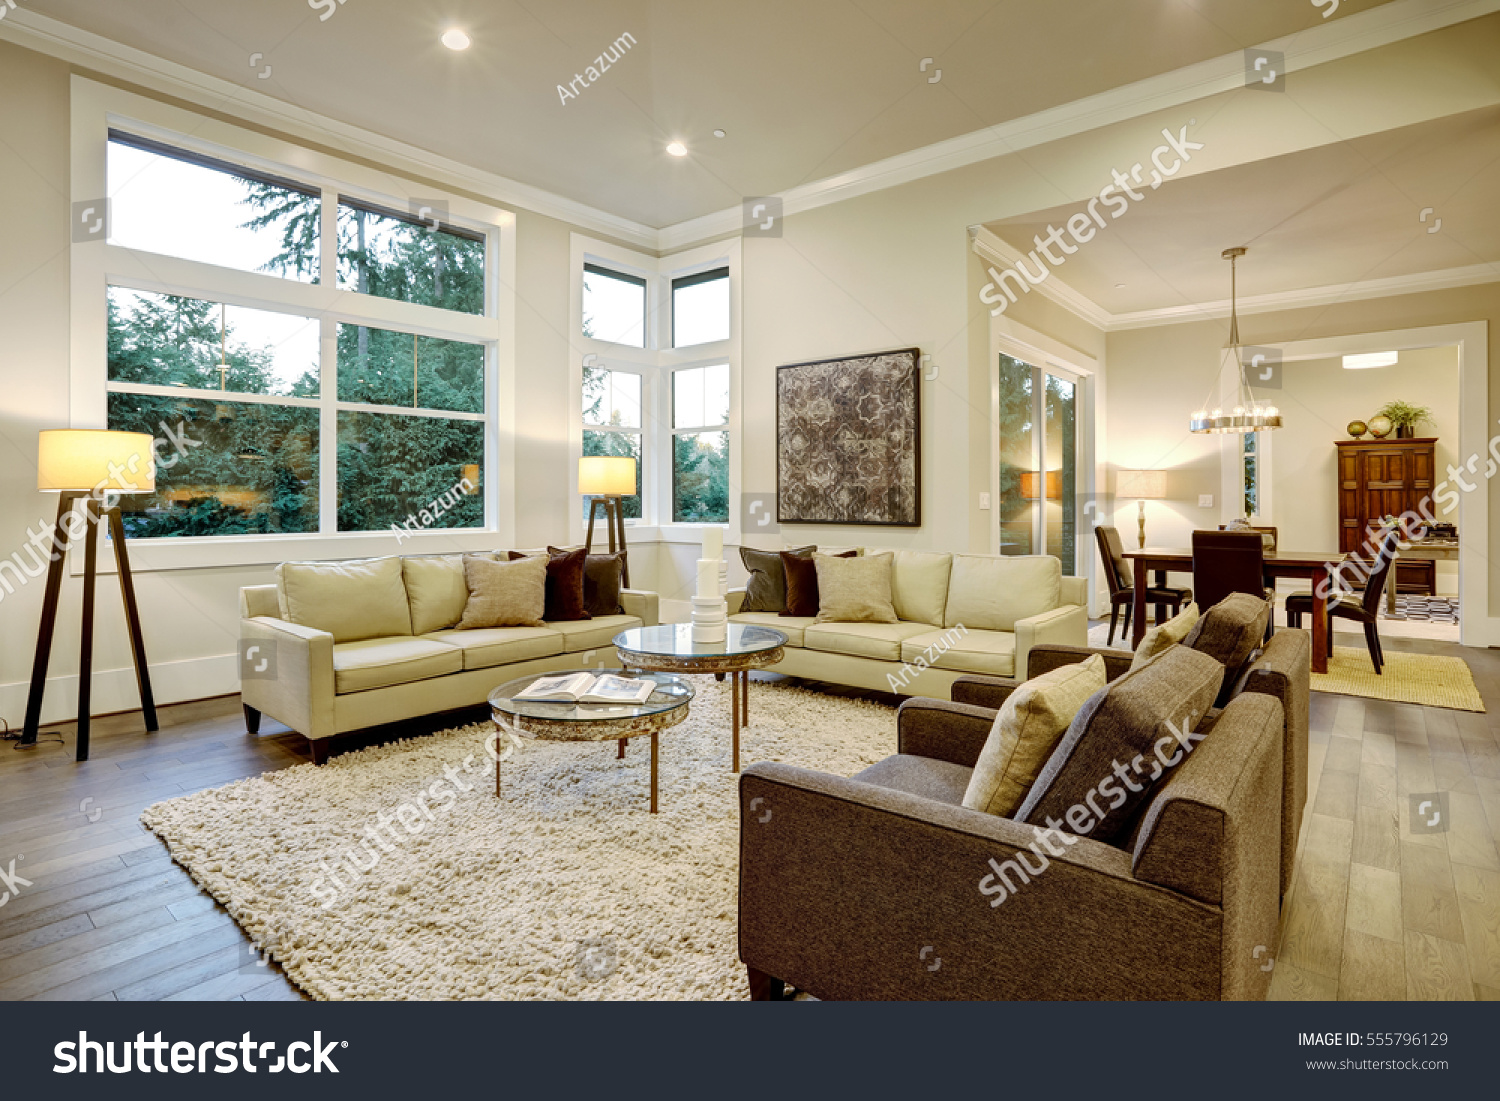 Chic Light Living Room Design With Dark Floors. Furnished With Glass Top Accent  Tables And Part 76